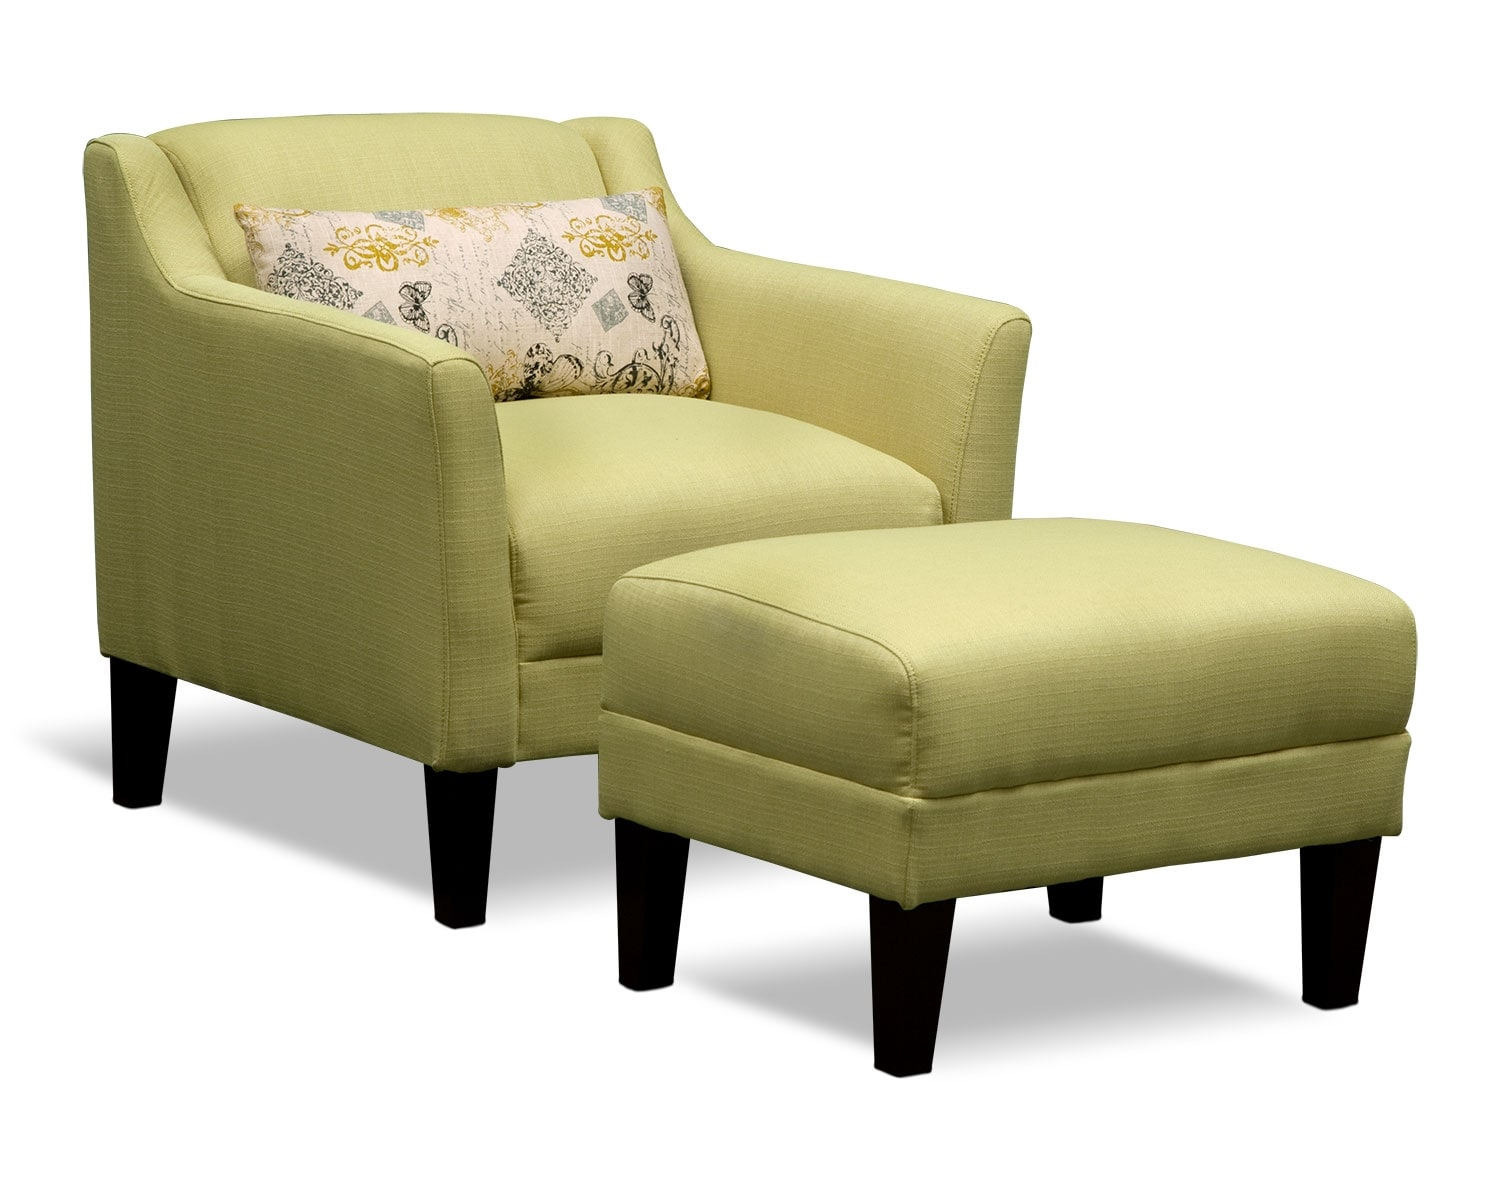 Living Room Furniture - The Bowen Collection - Accent Chair and Ottoman